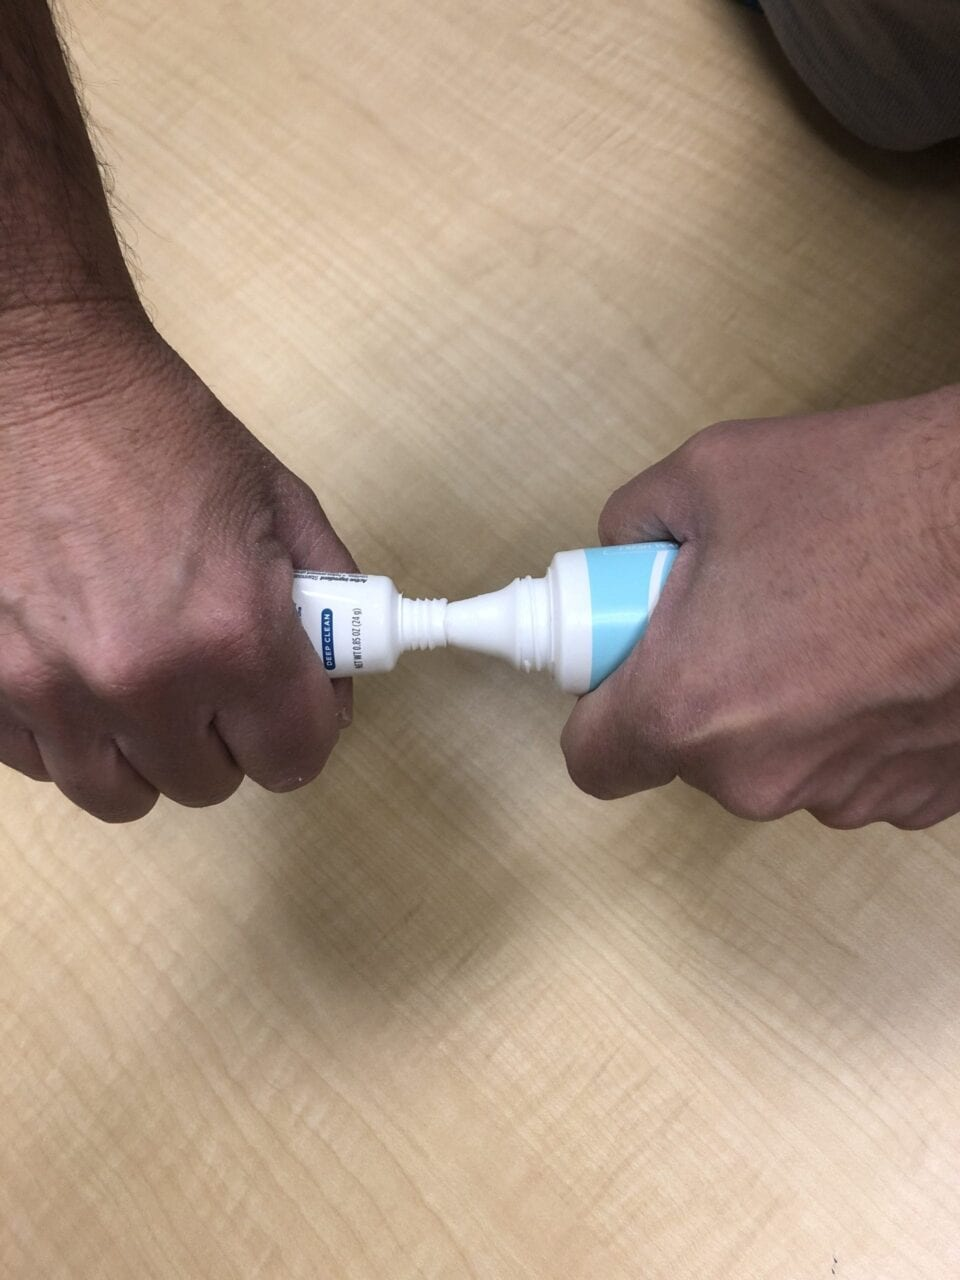 Squeezing one toothpaste into another toothpaste tube.